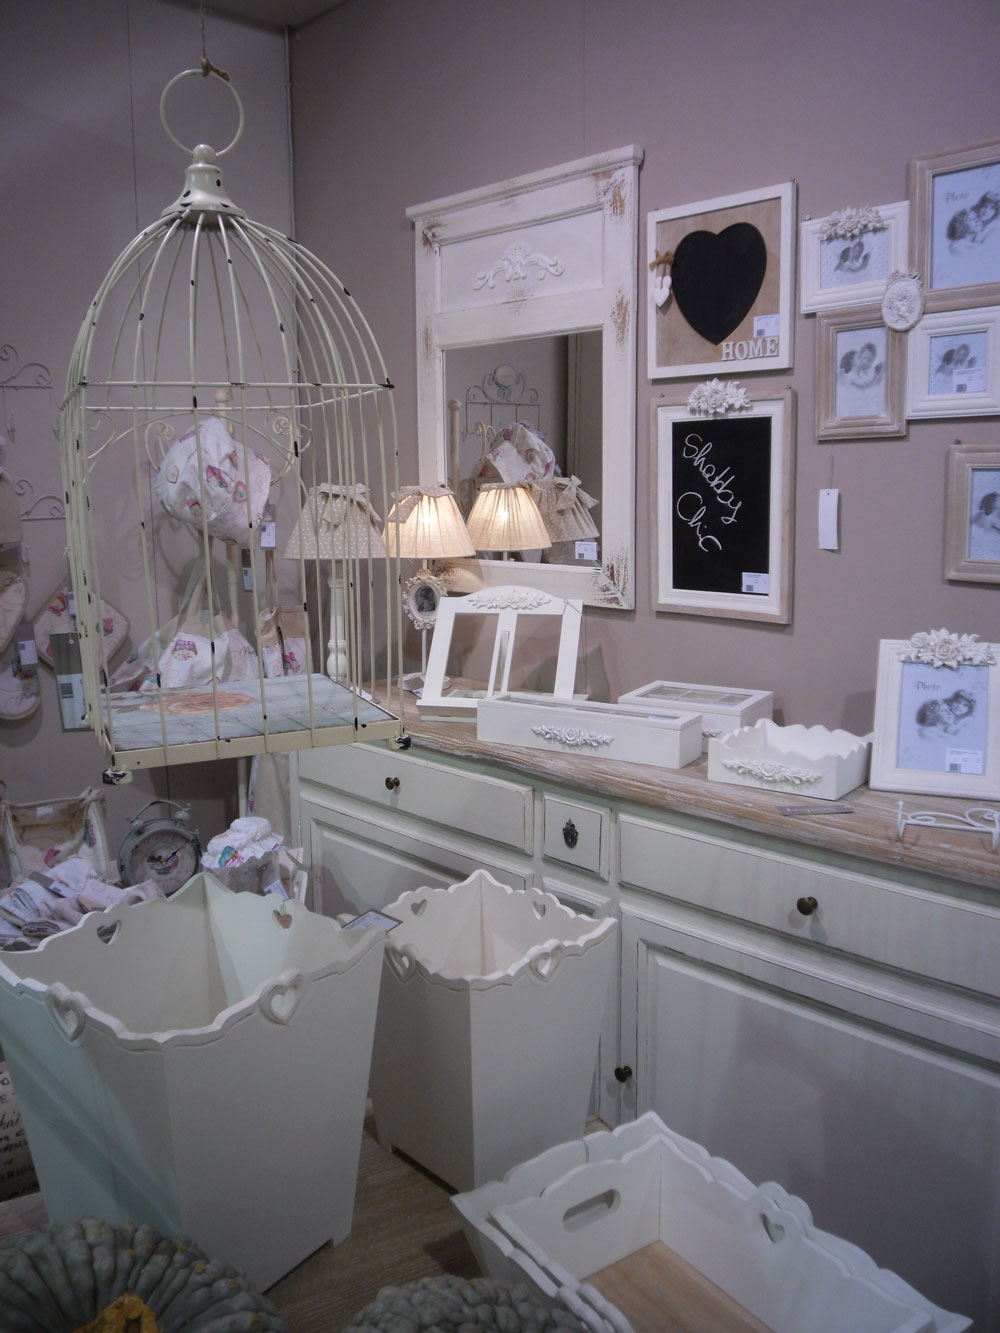 Lo shabby chic per la tua casa for Arredamento country chic ikea